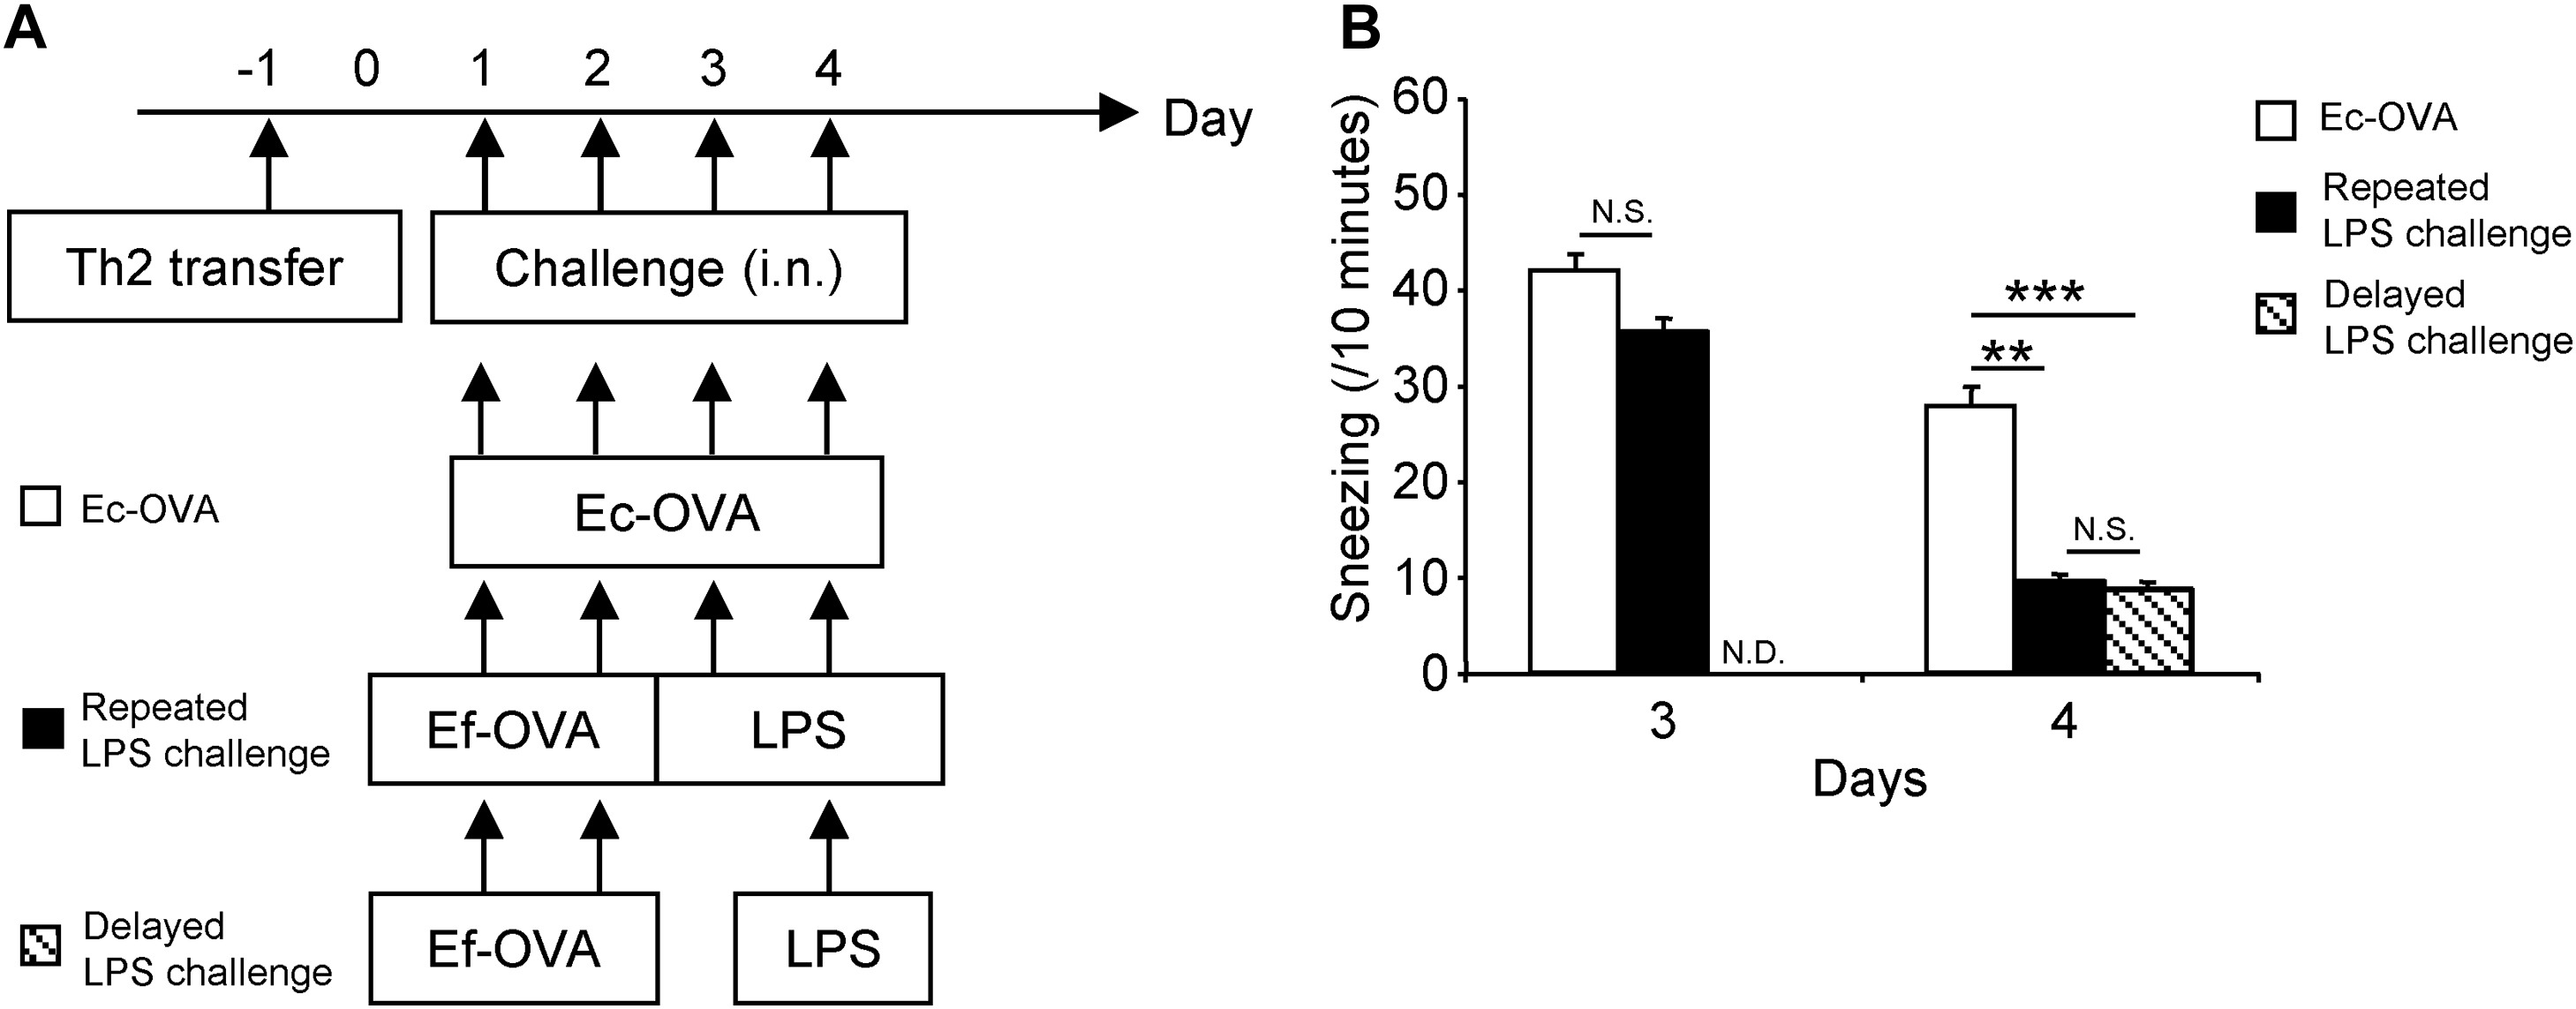 Allergen Endotoxins Induce T Cell Dependent And Non Ige Mediated Nasal Hypersensitivity In Mice